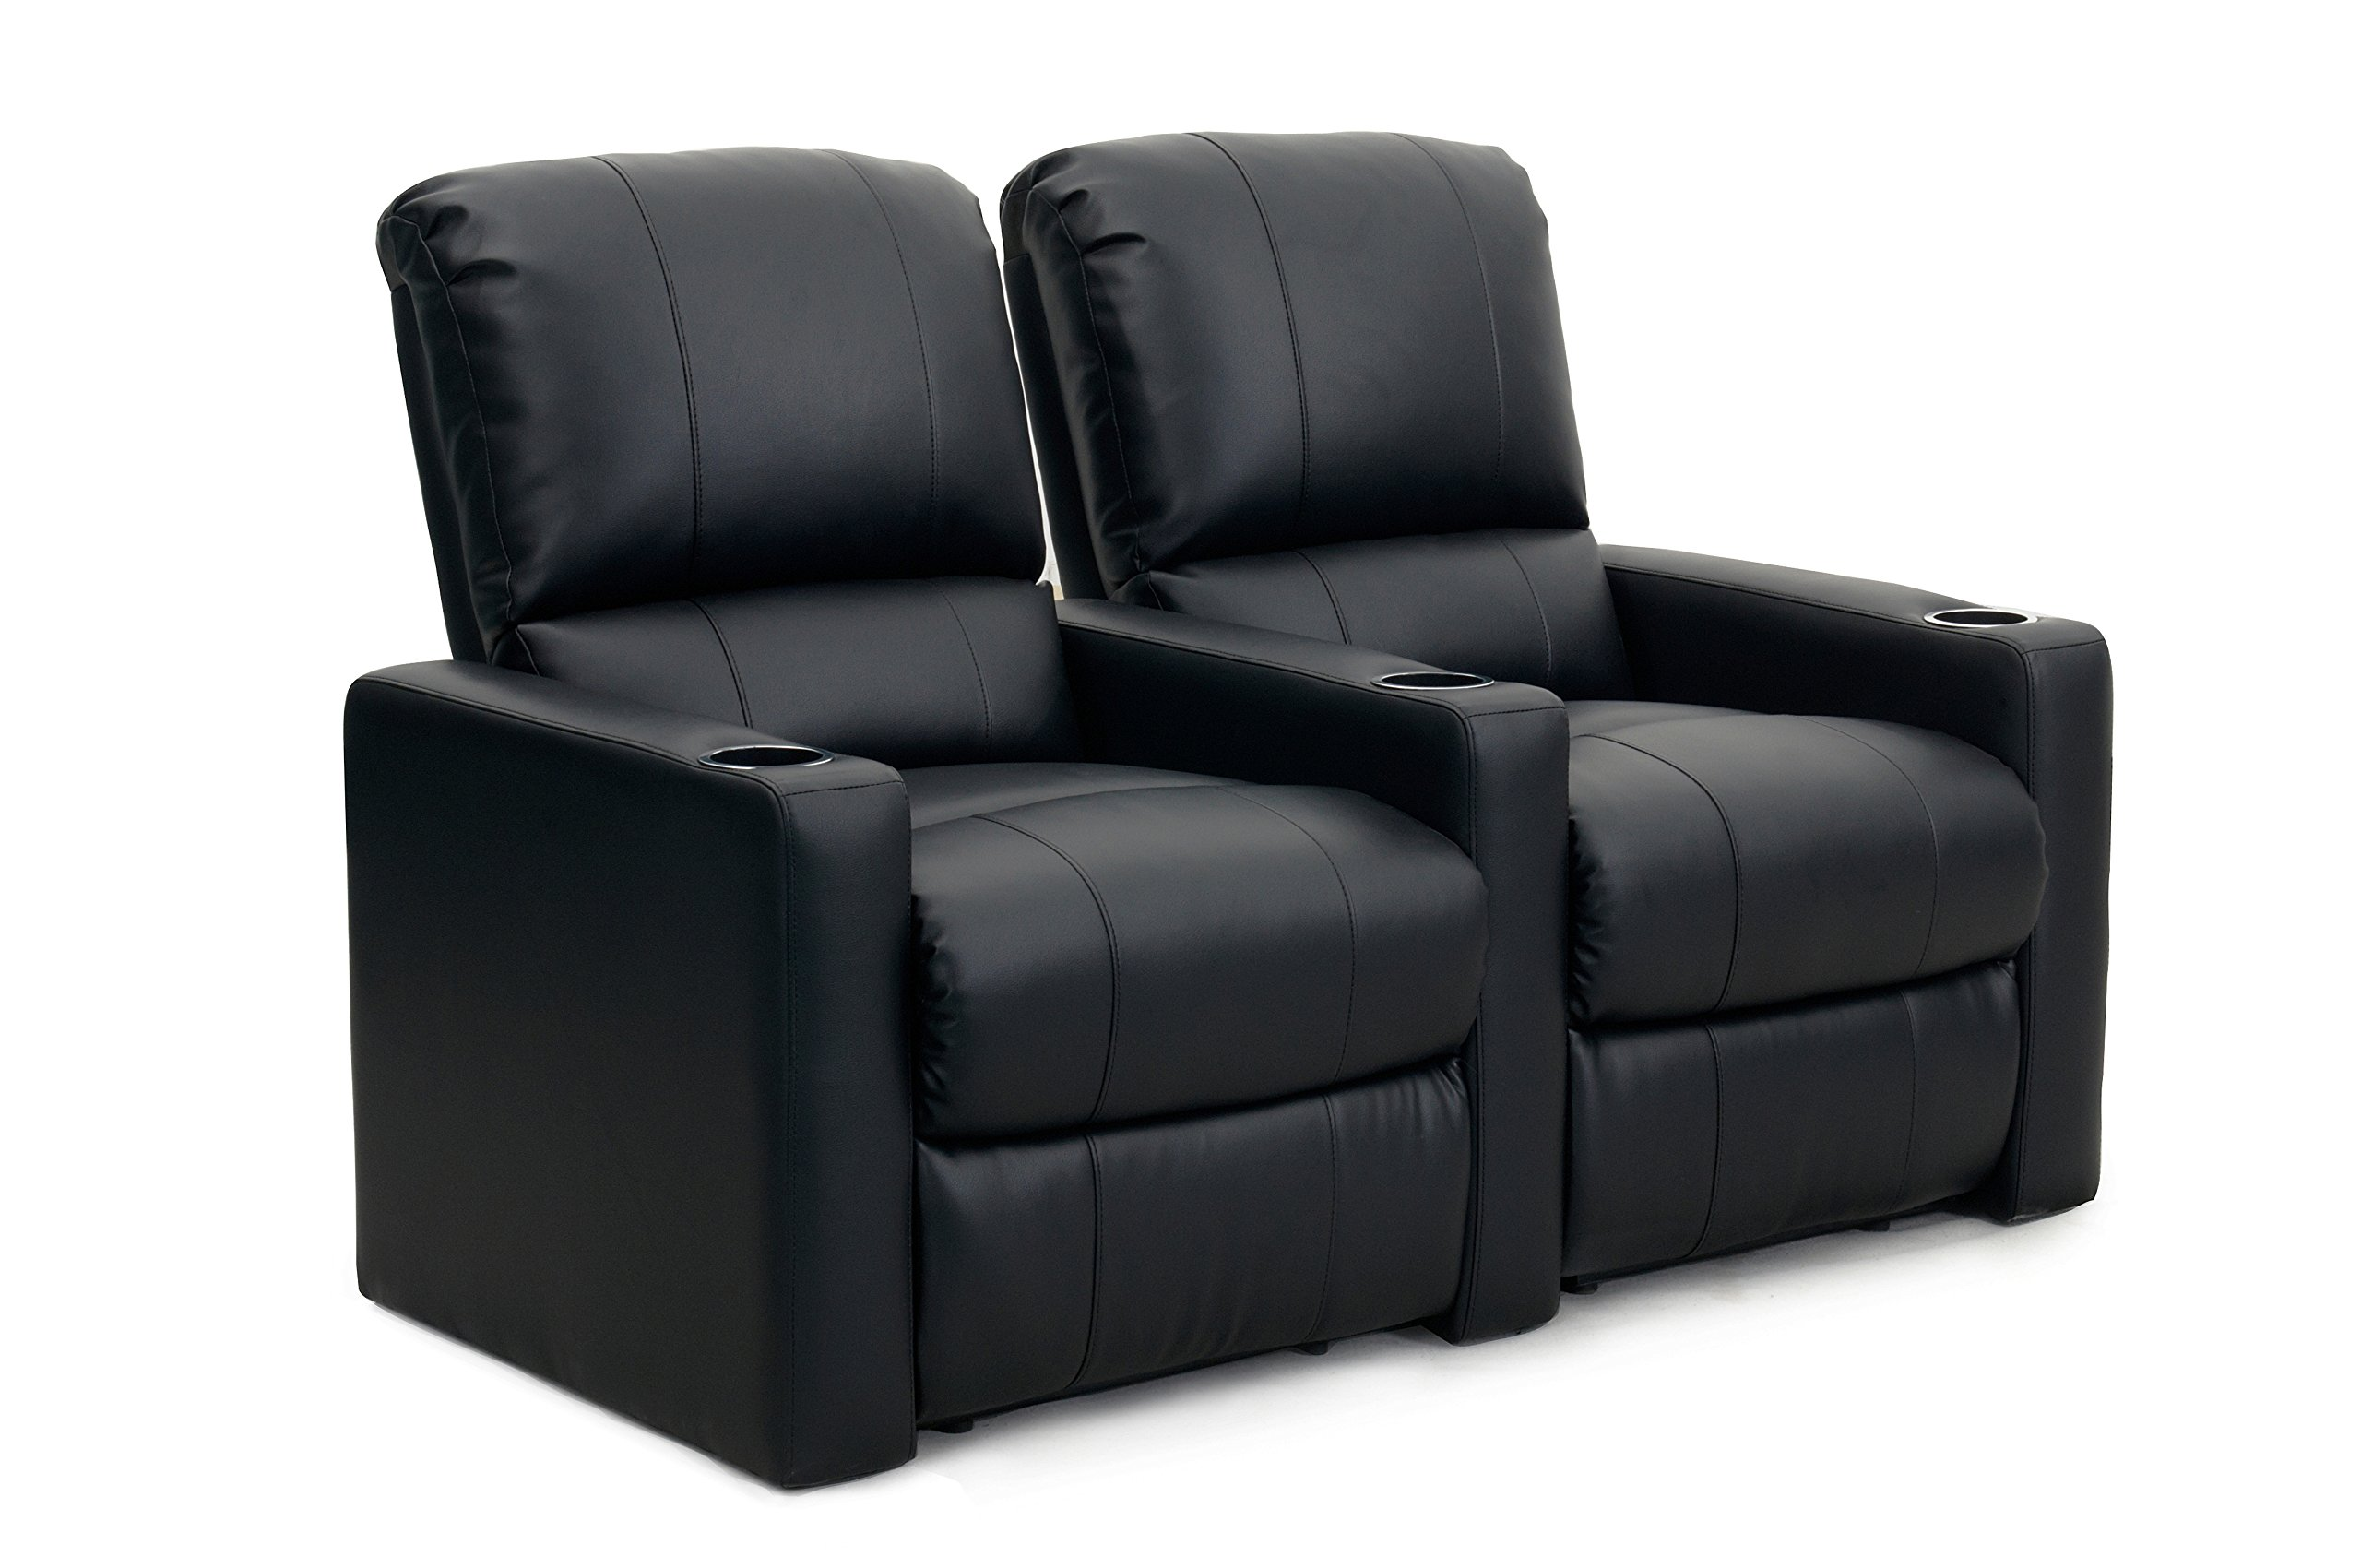 Octane Seating CHARGER-R2SM-BND-BL Octane Charger XS300 Leather Home Theater Recliner Set (Row of 2)